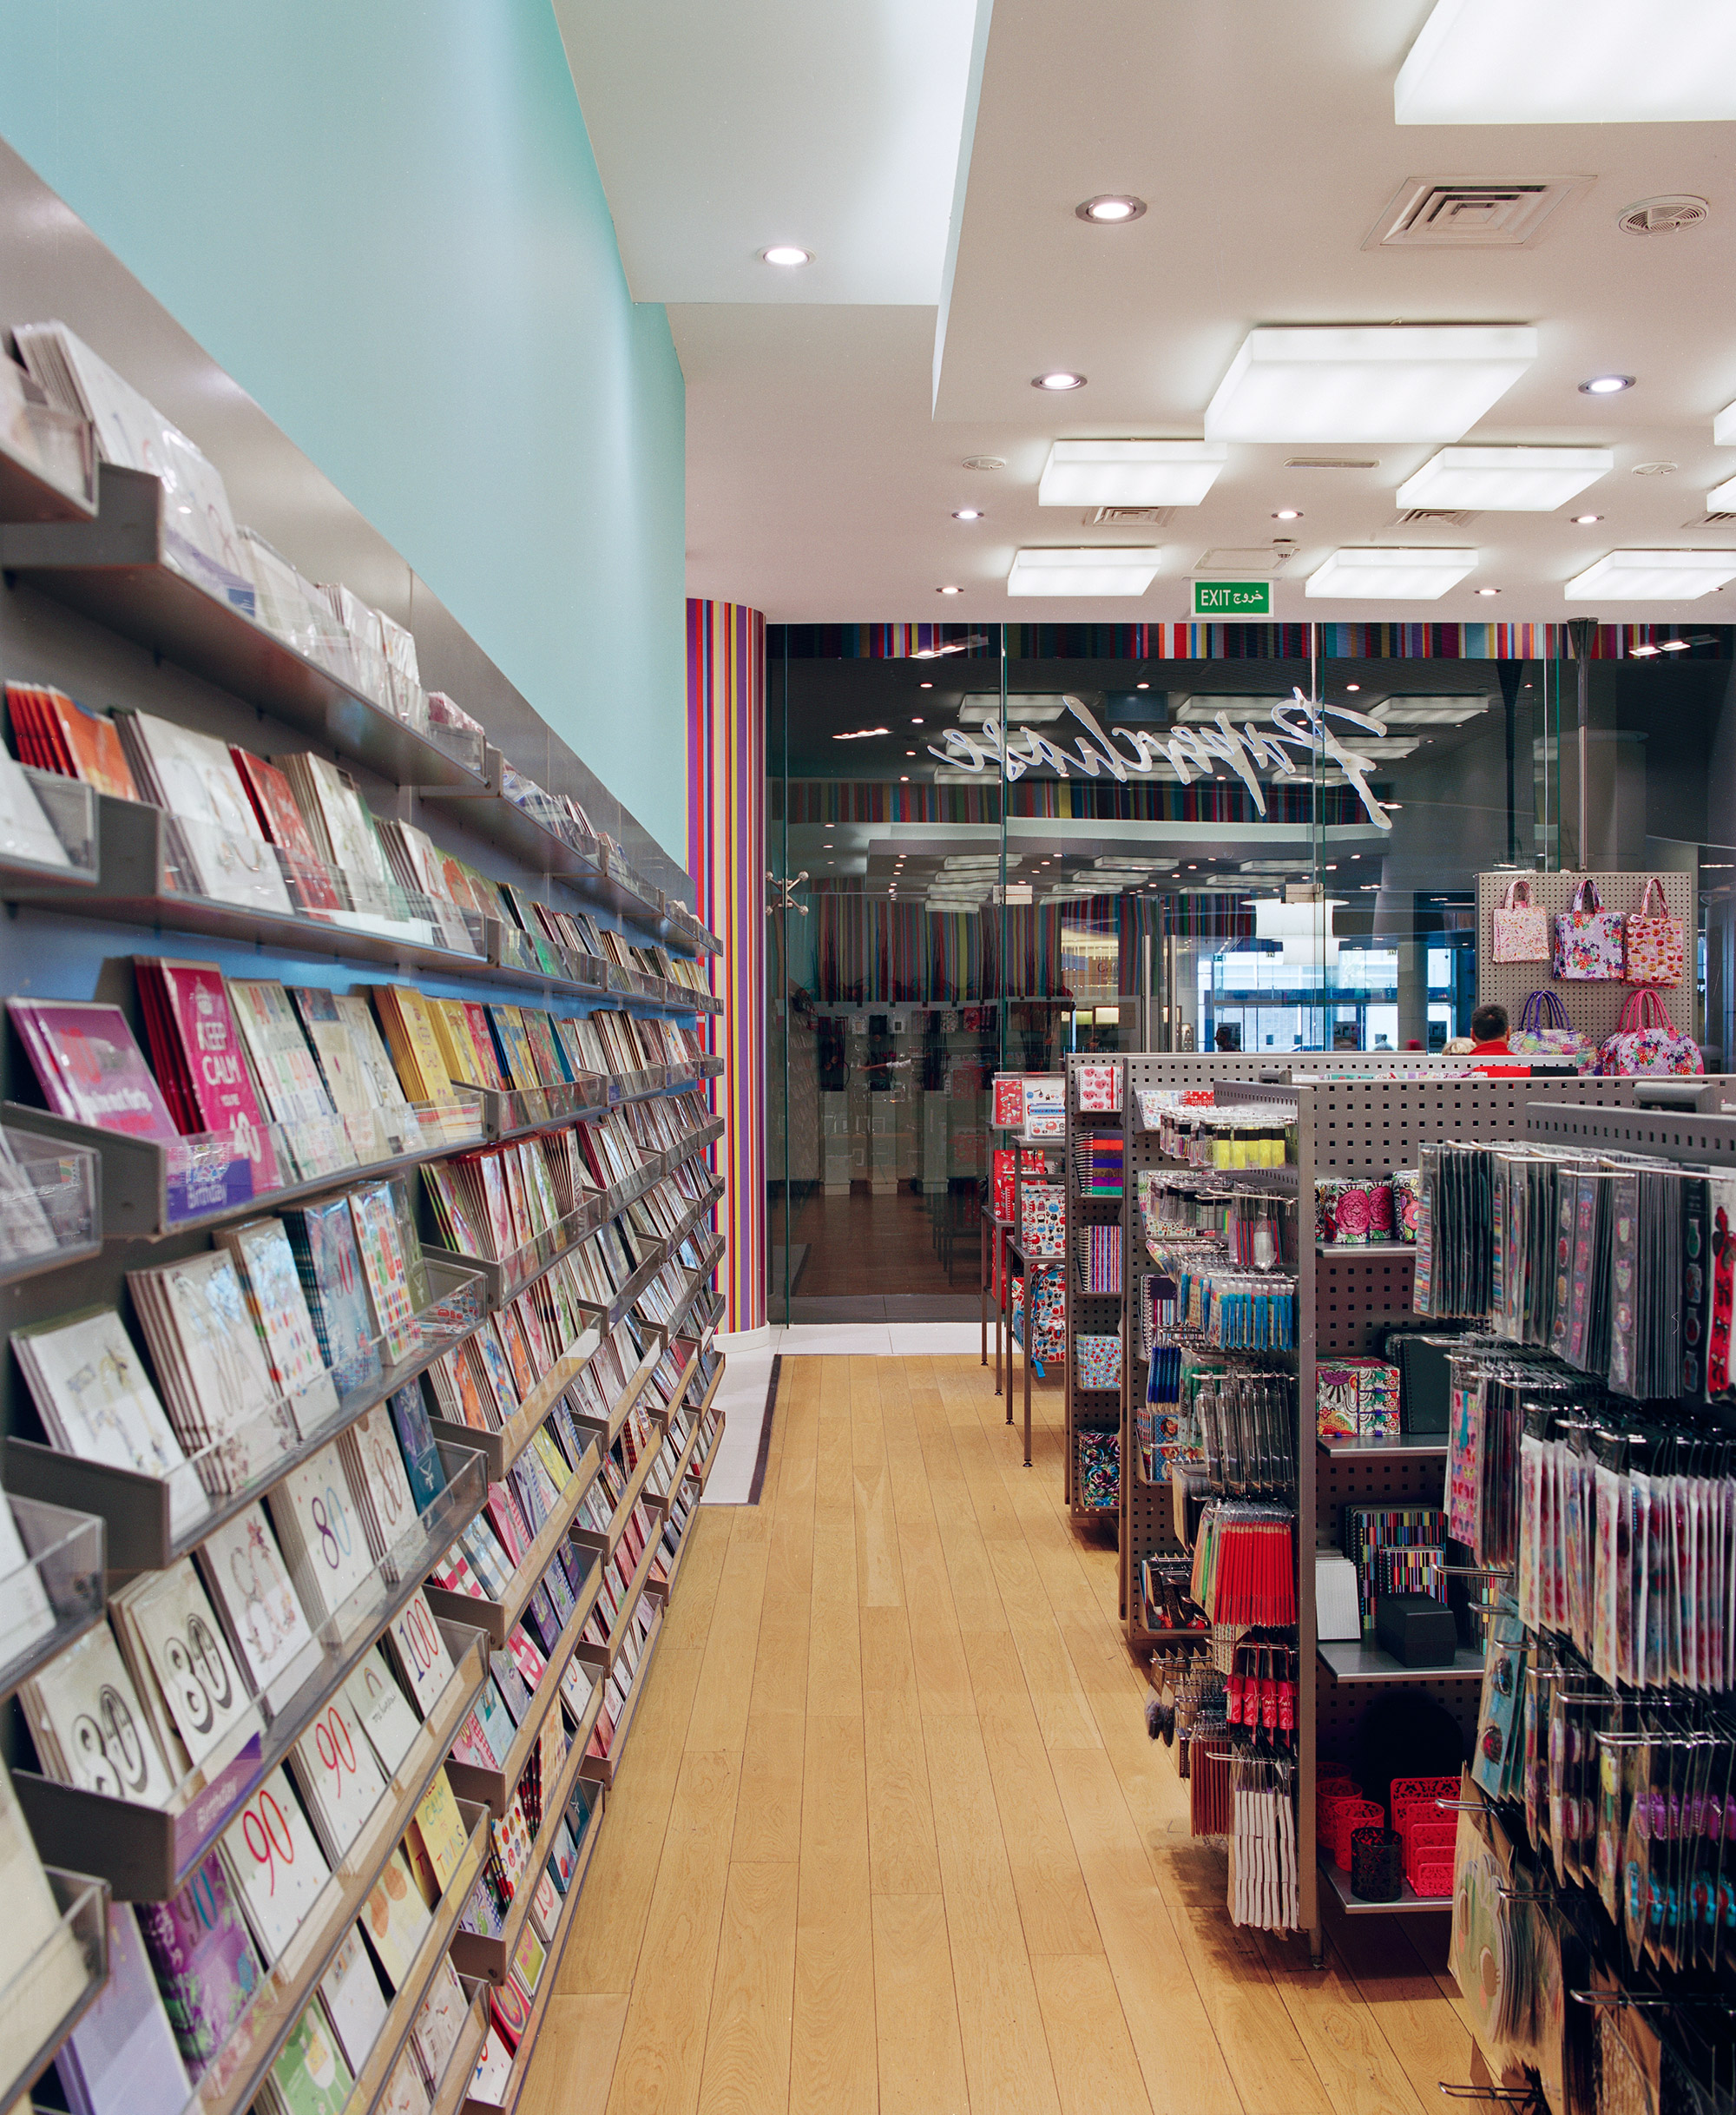 Inside Paperchase Dubai, located in the Dubai Mall